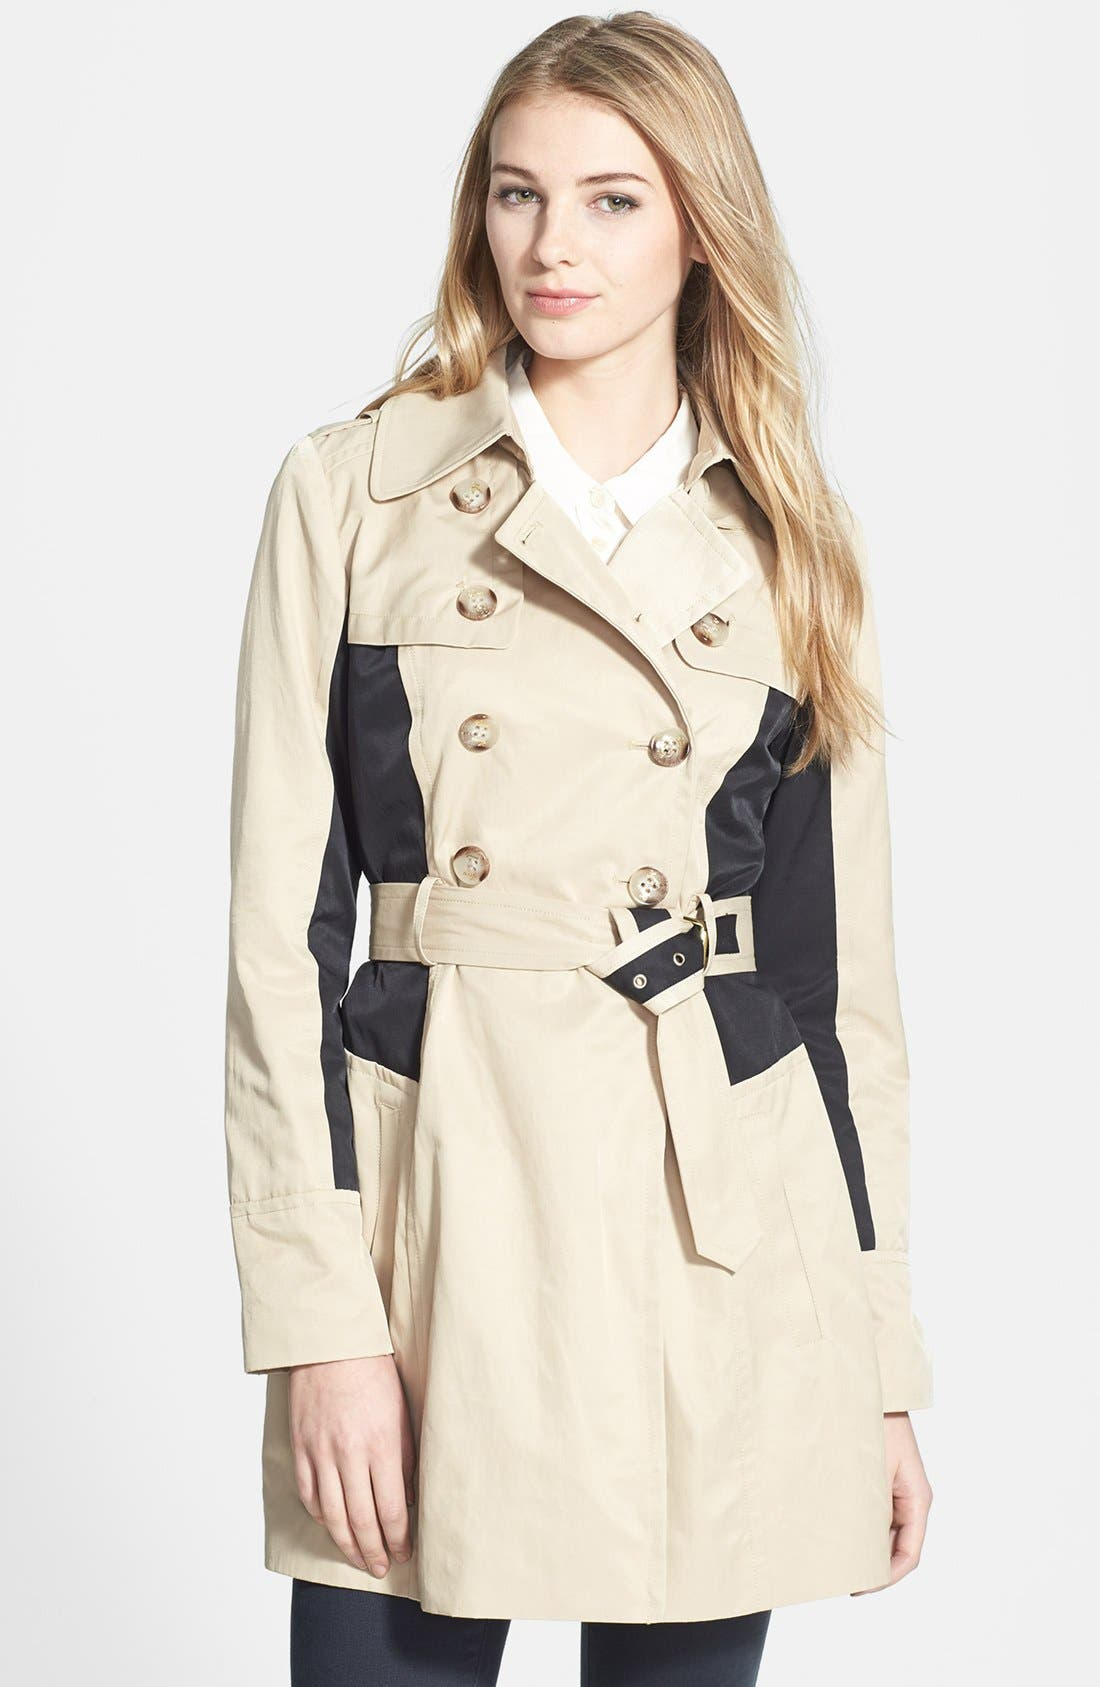 Alternate Image 1 Selected - GUESS Colorblock Double Breasted Trench Coat